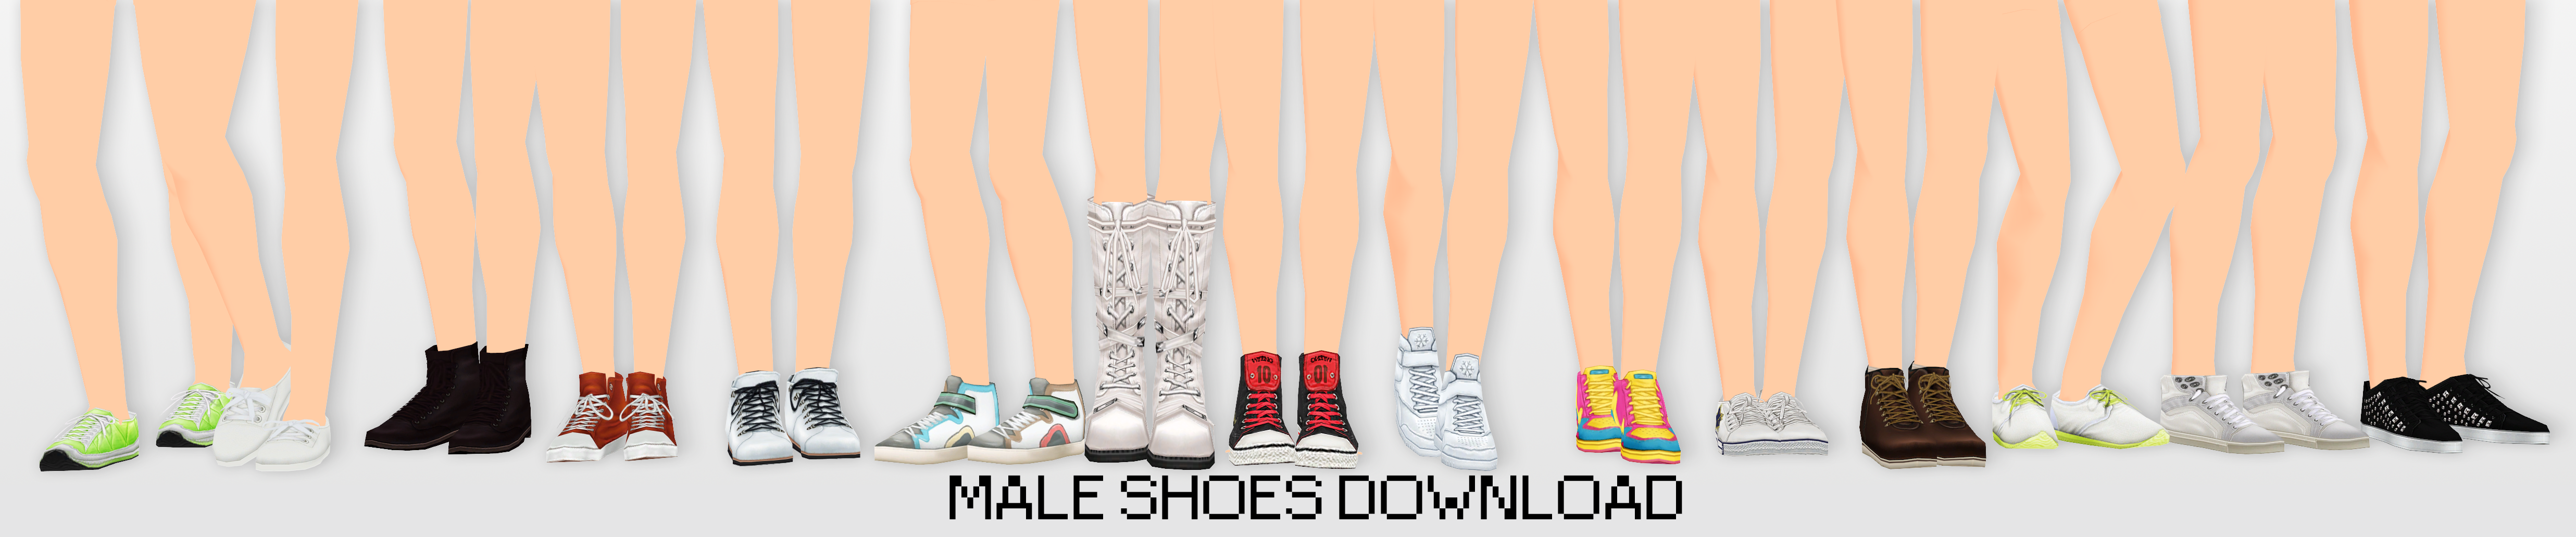 MMD Male Shoes DL